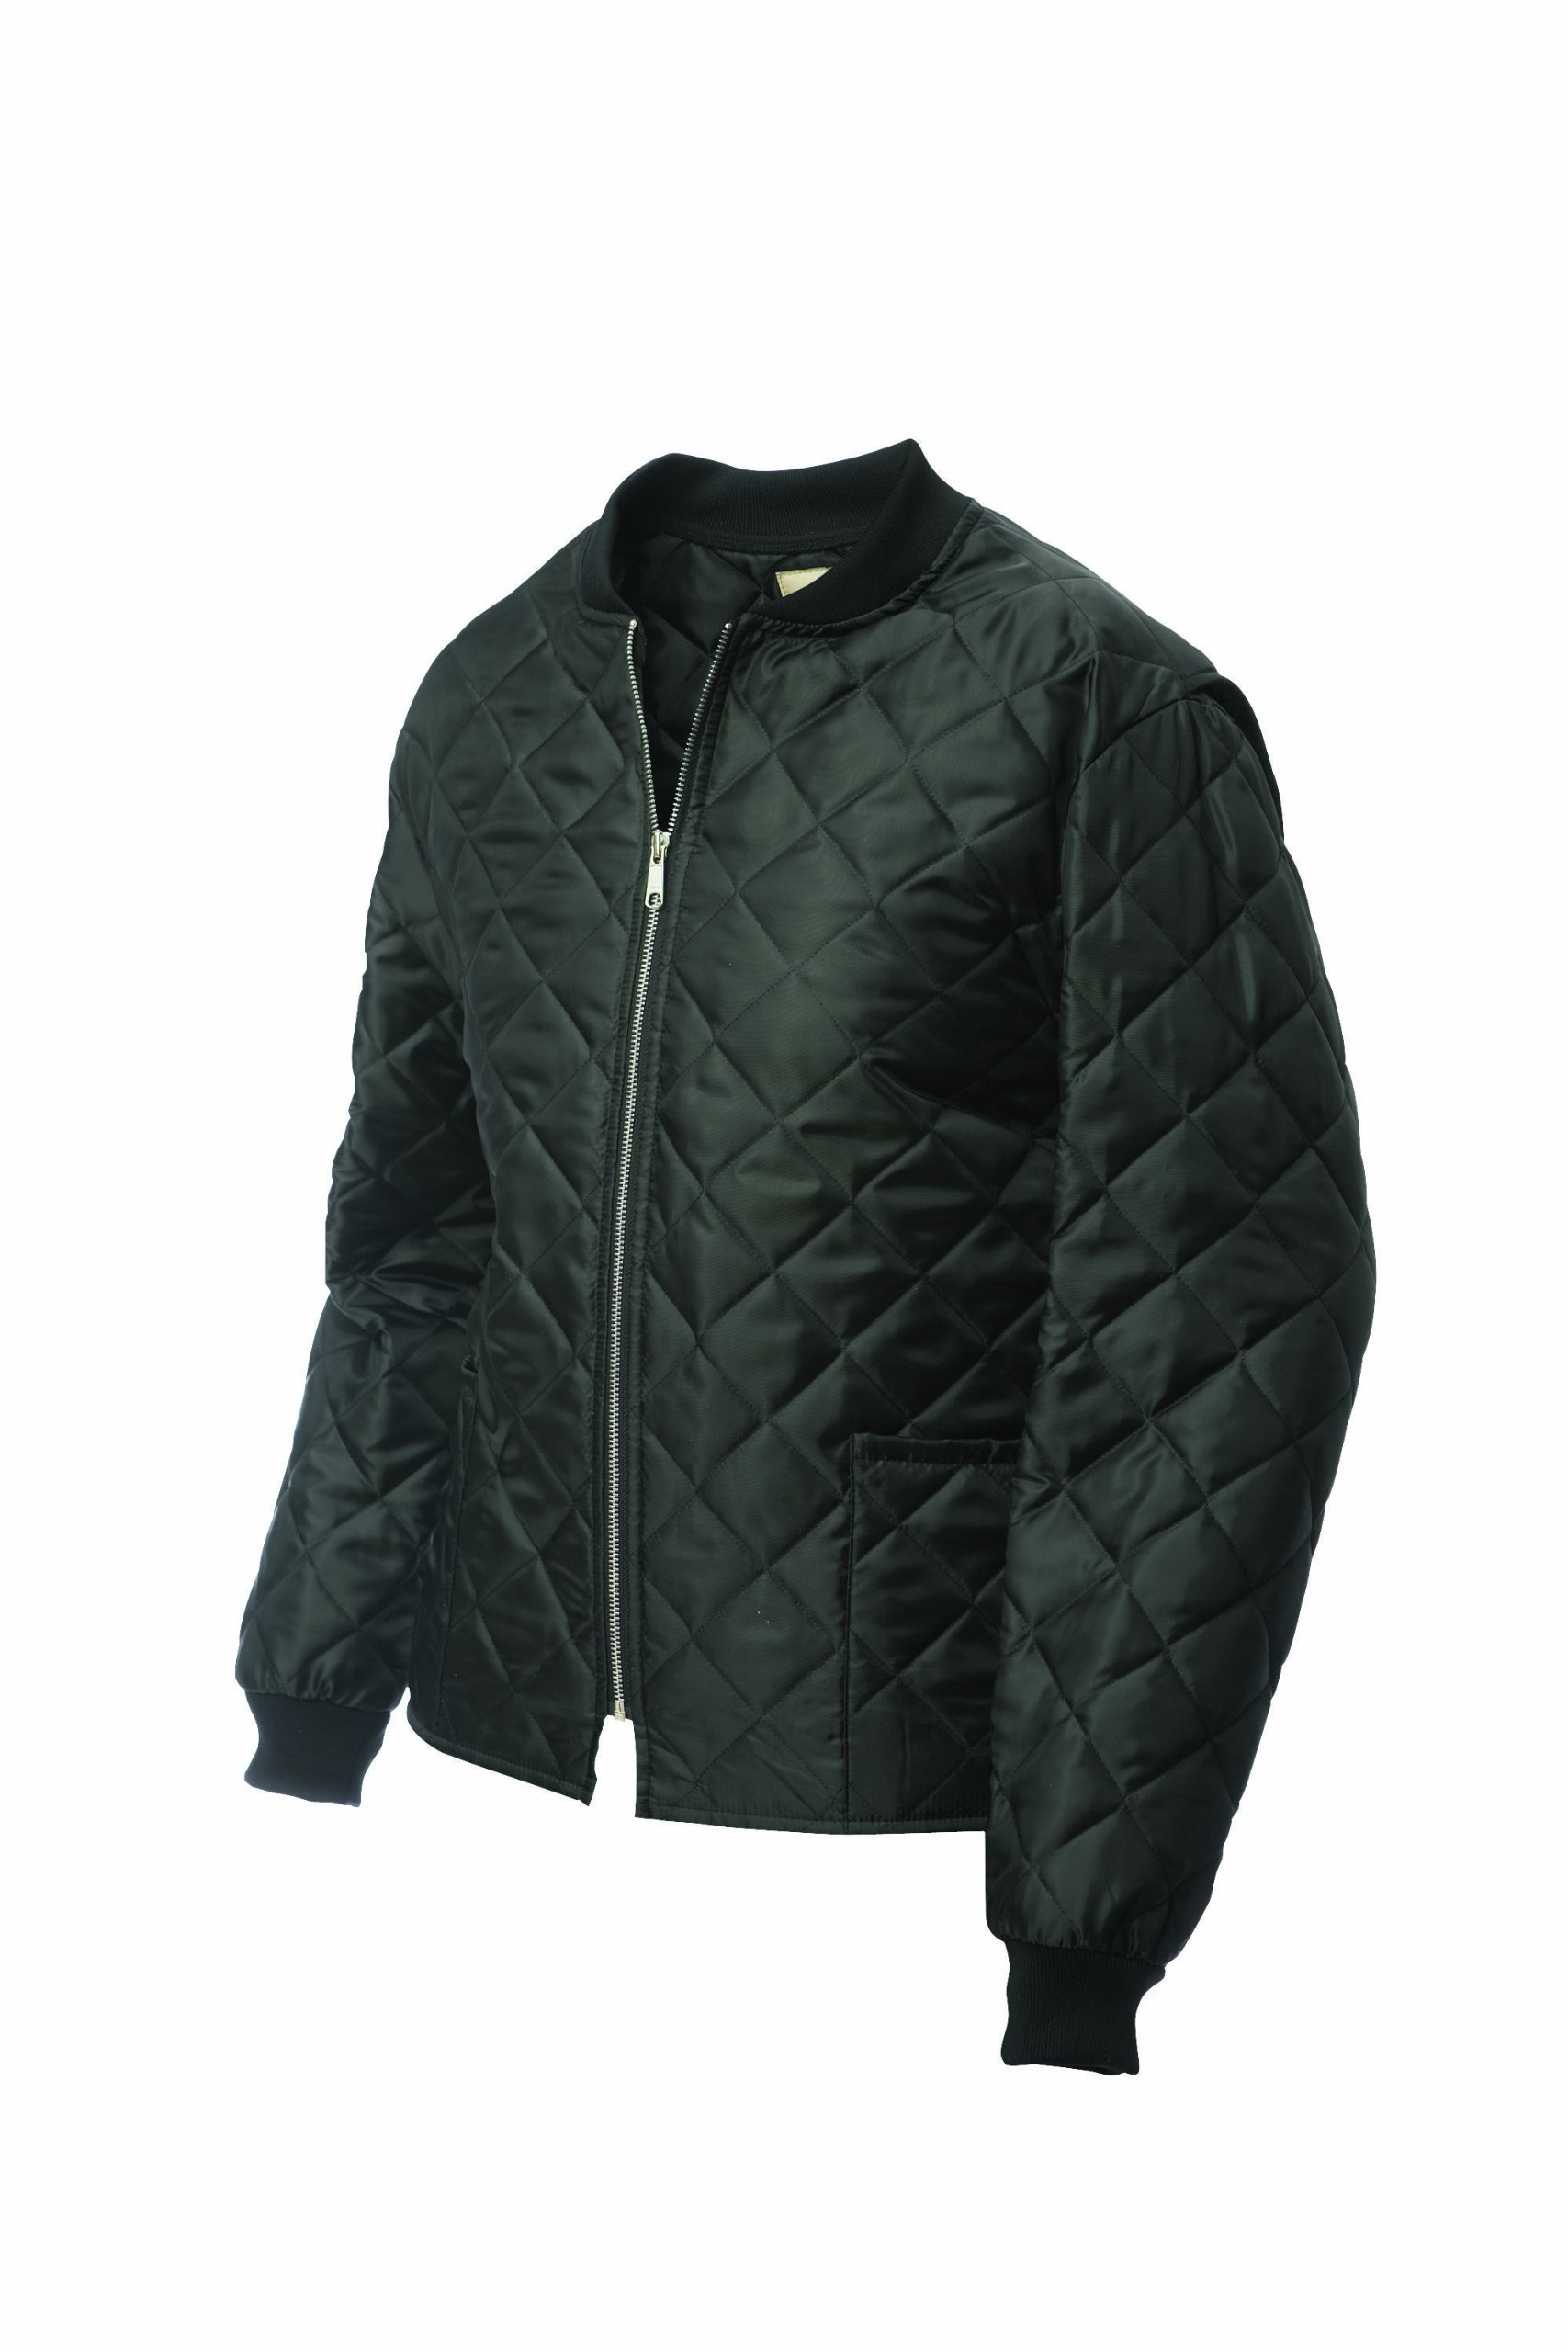 Work King Men's Quilted Freezer Jacket, Black, 4X-Large